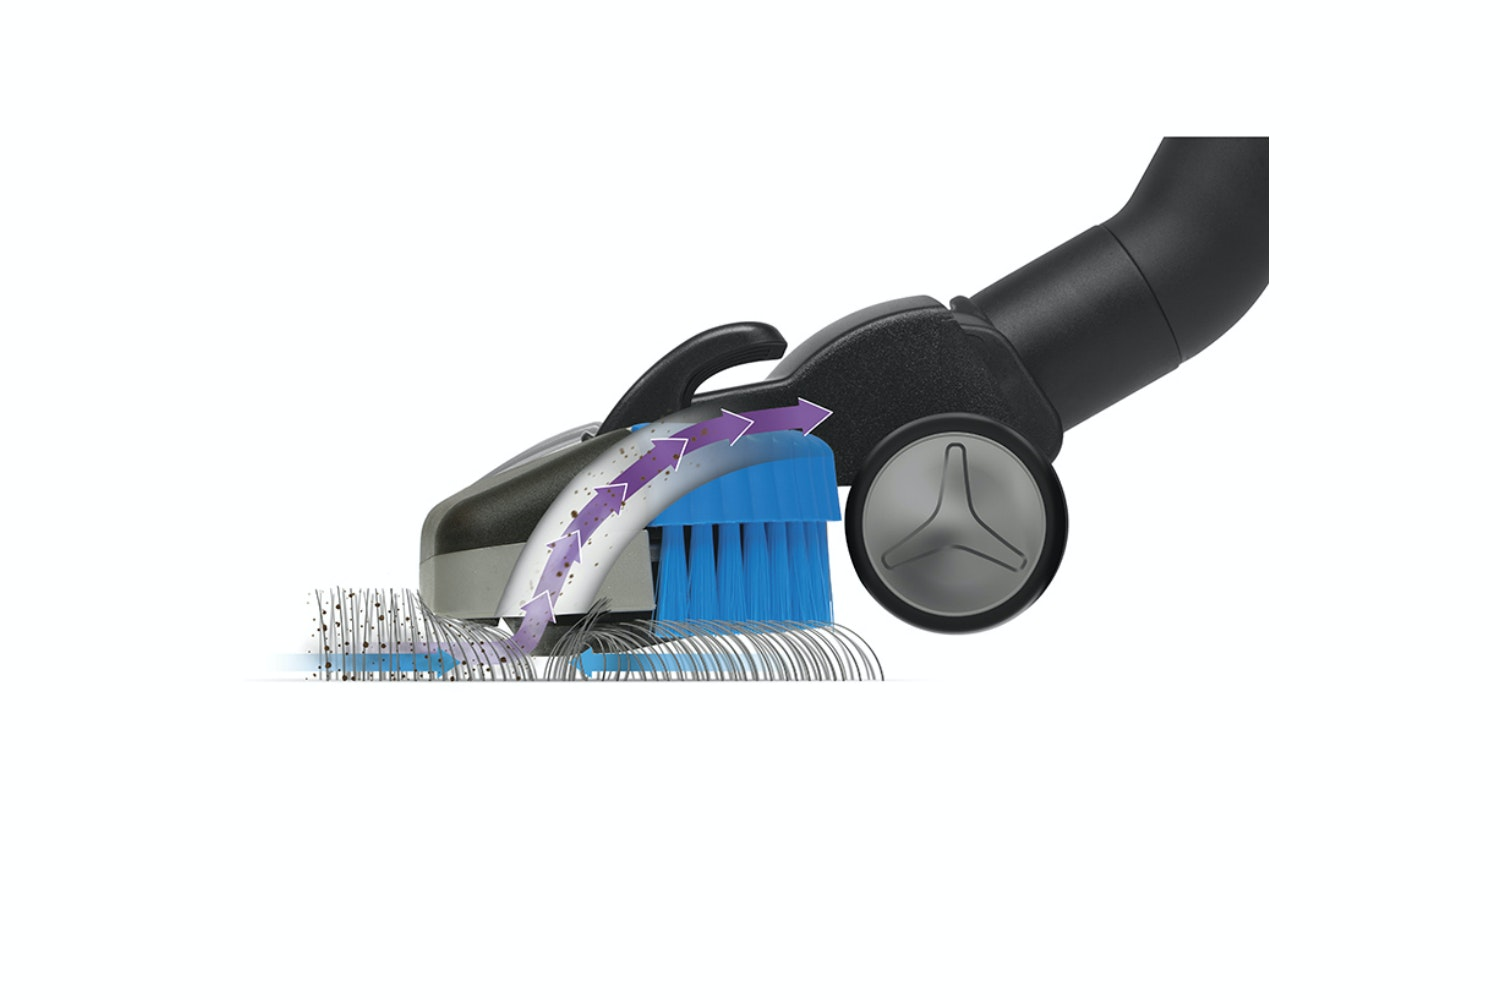 Philips Performer Active Vacuum Cleaner tri active + nozzle head